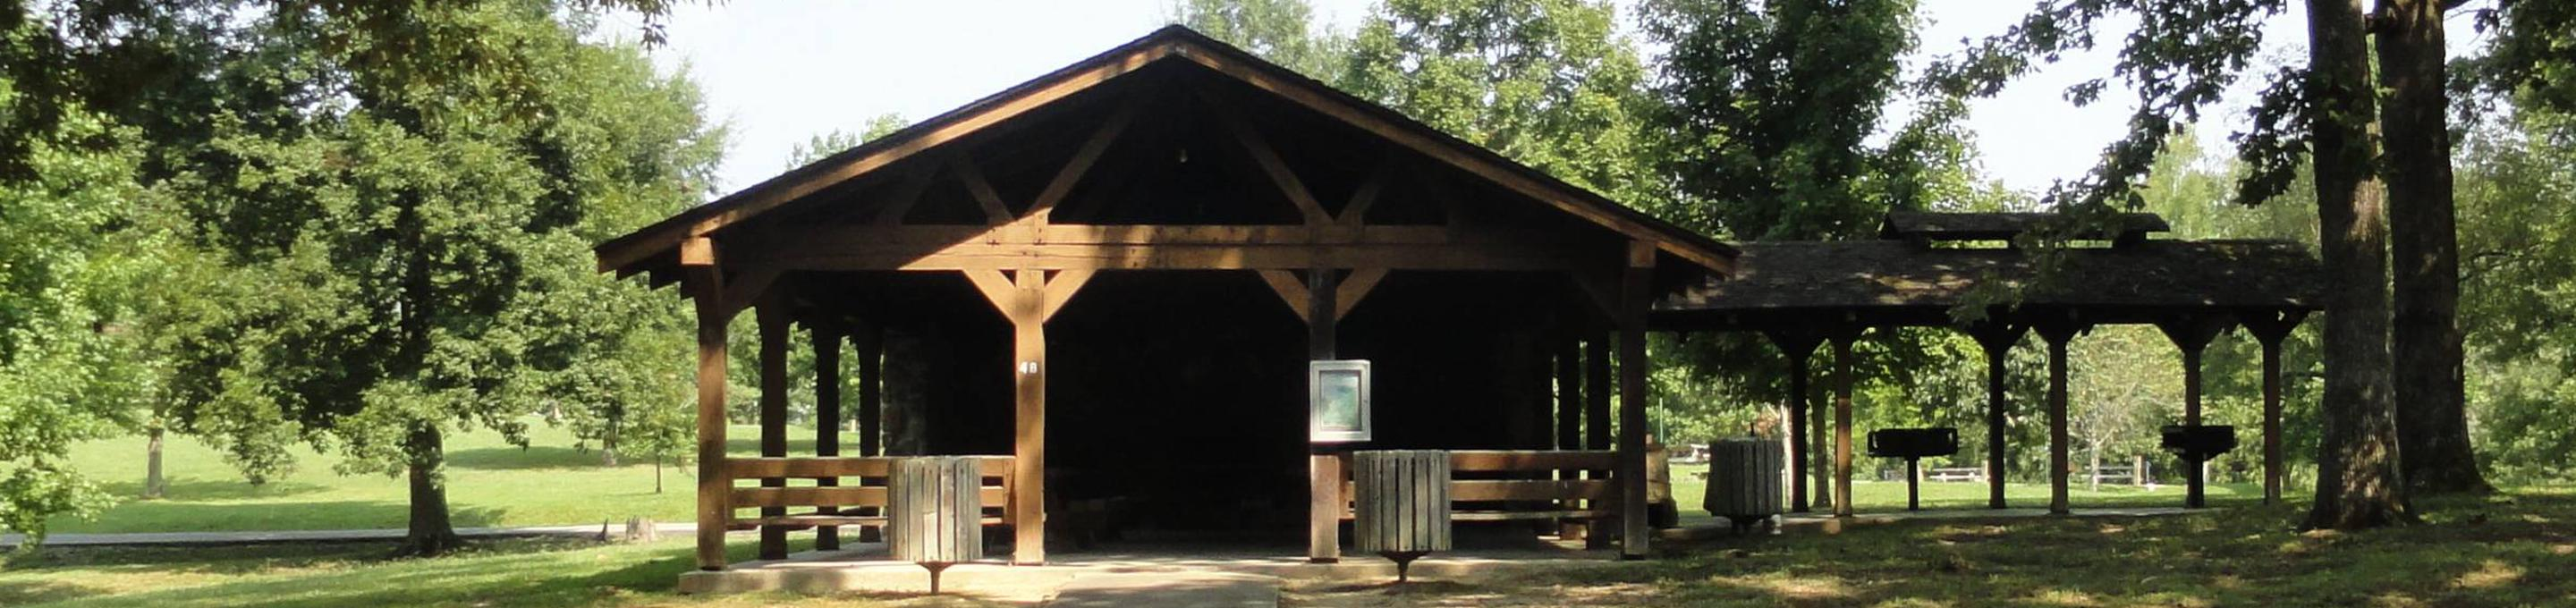 WILLOW GROVE PICNIC SHELTER